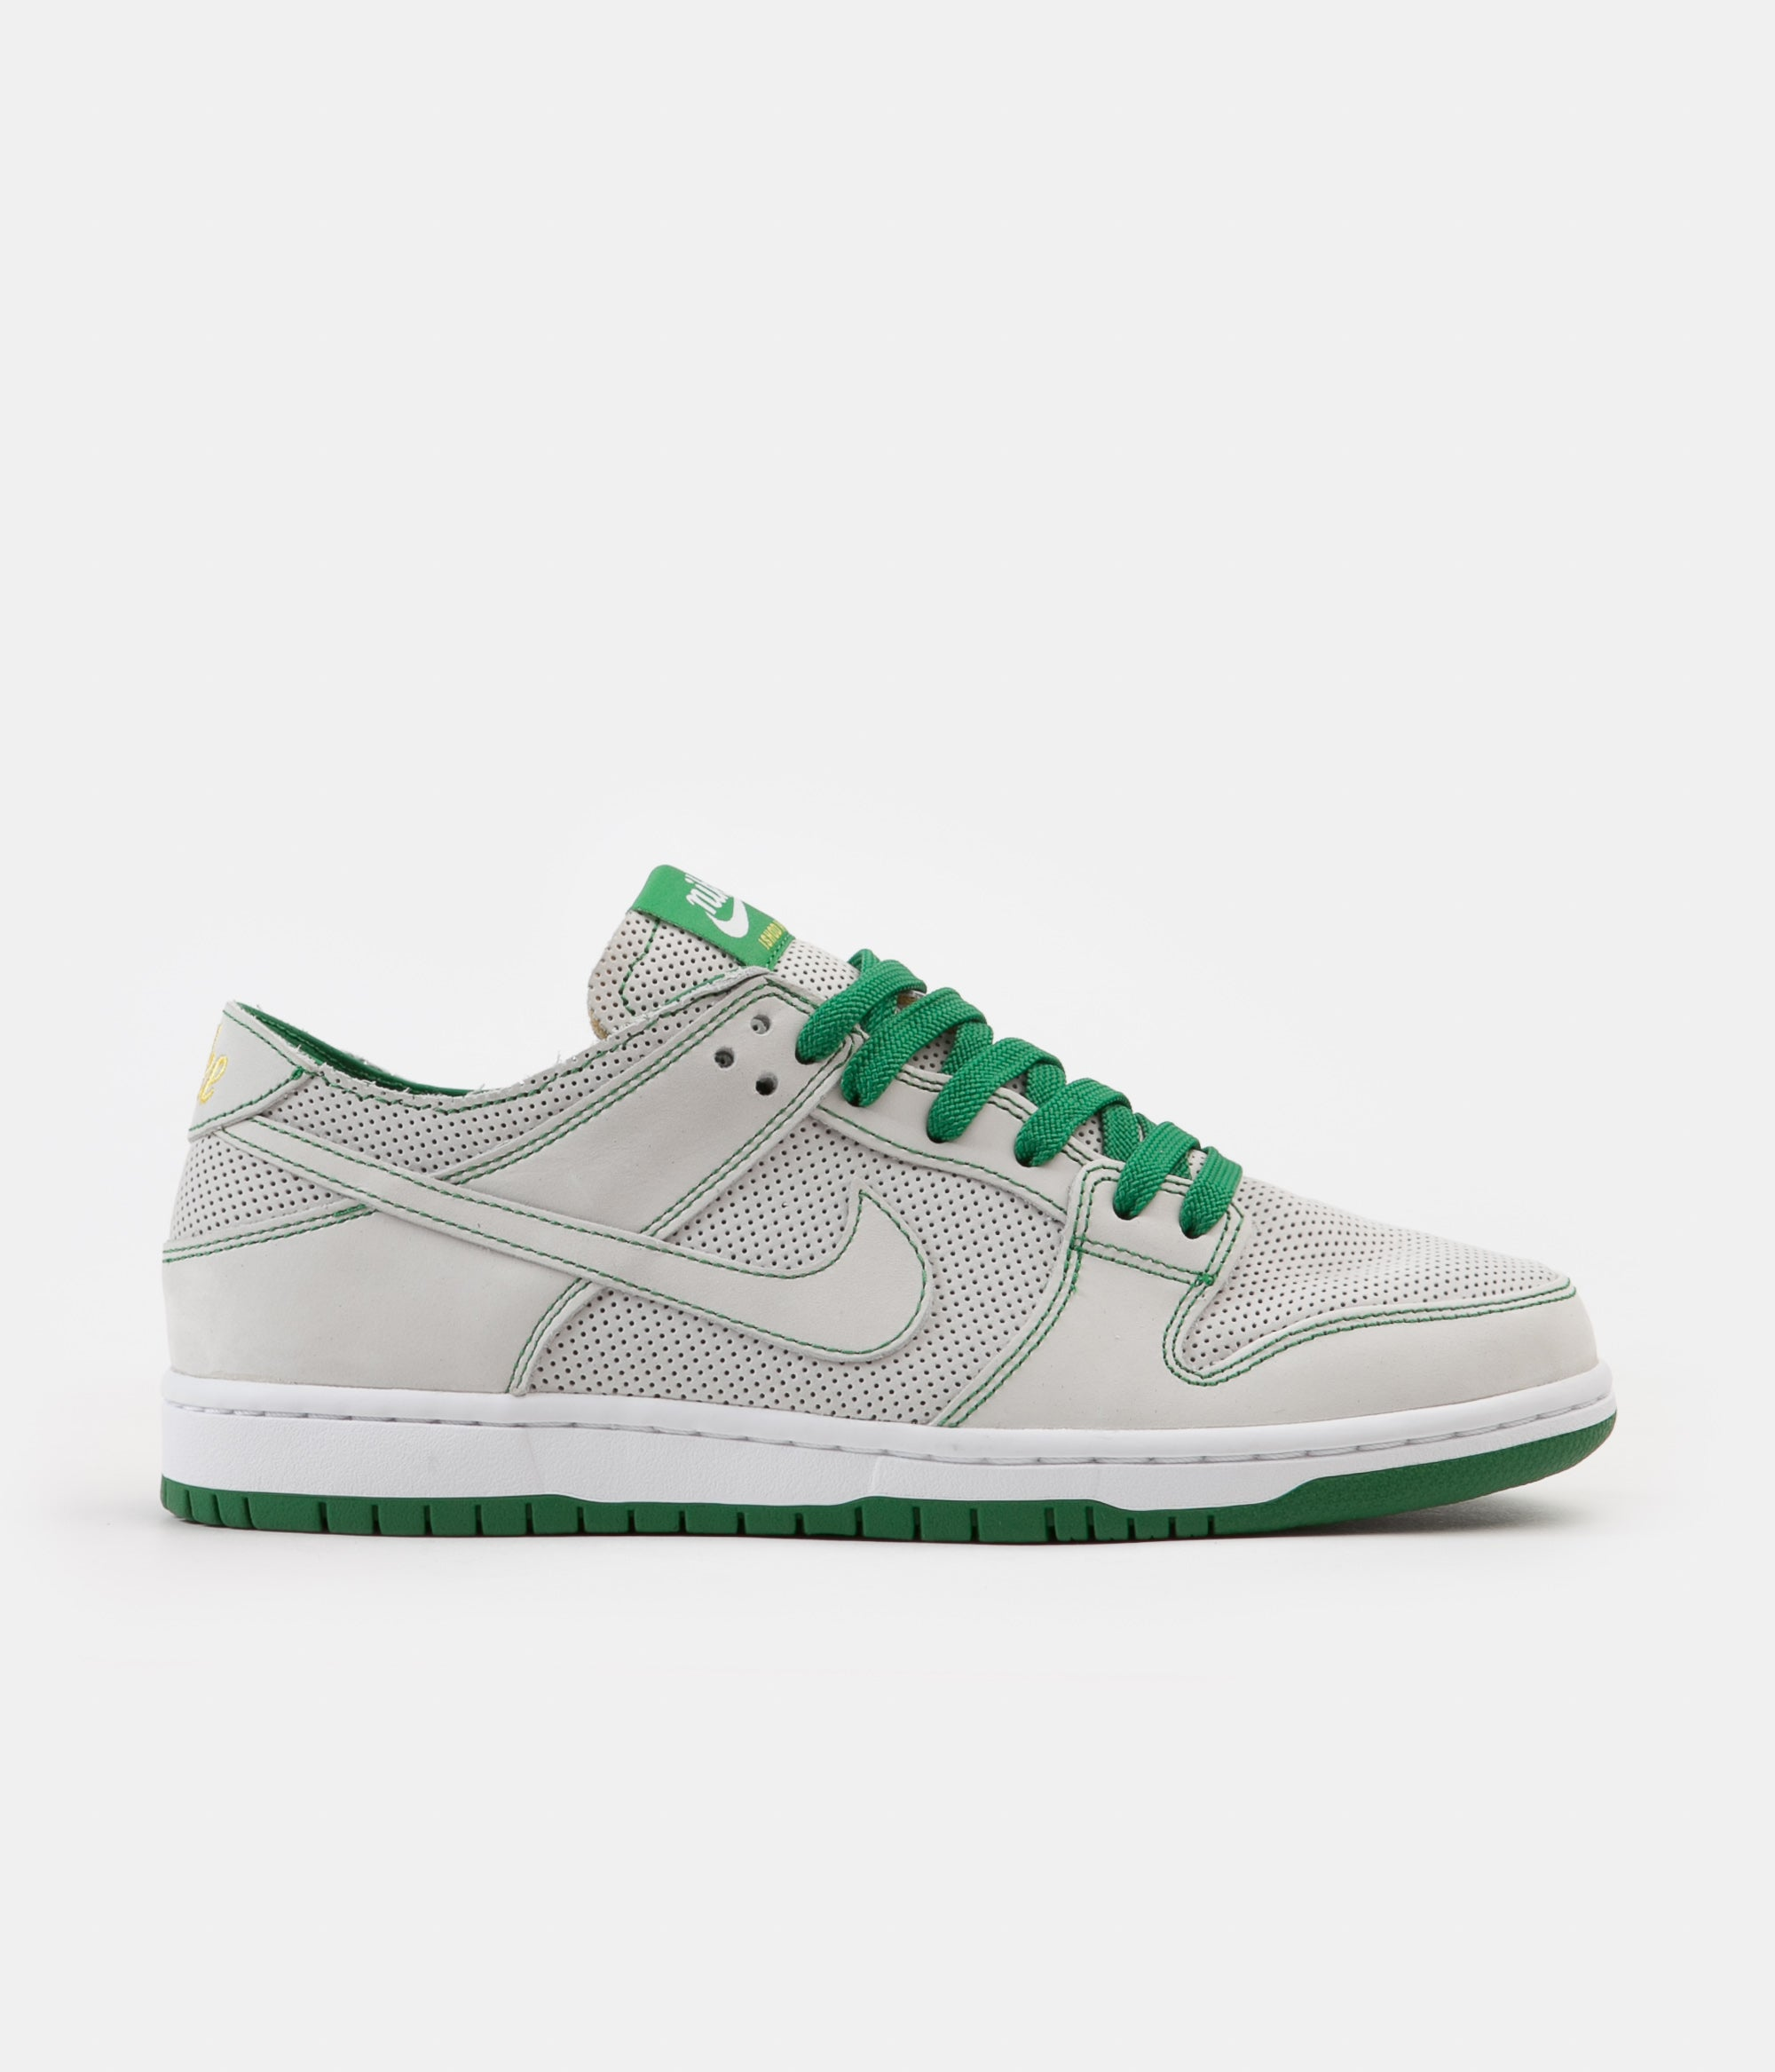 huge discount 95b6a 8cde0 ... france nike sb dunk low pro ishod deconstructed shoes white white aloe  verde f4c67 7d11f